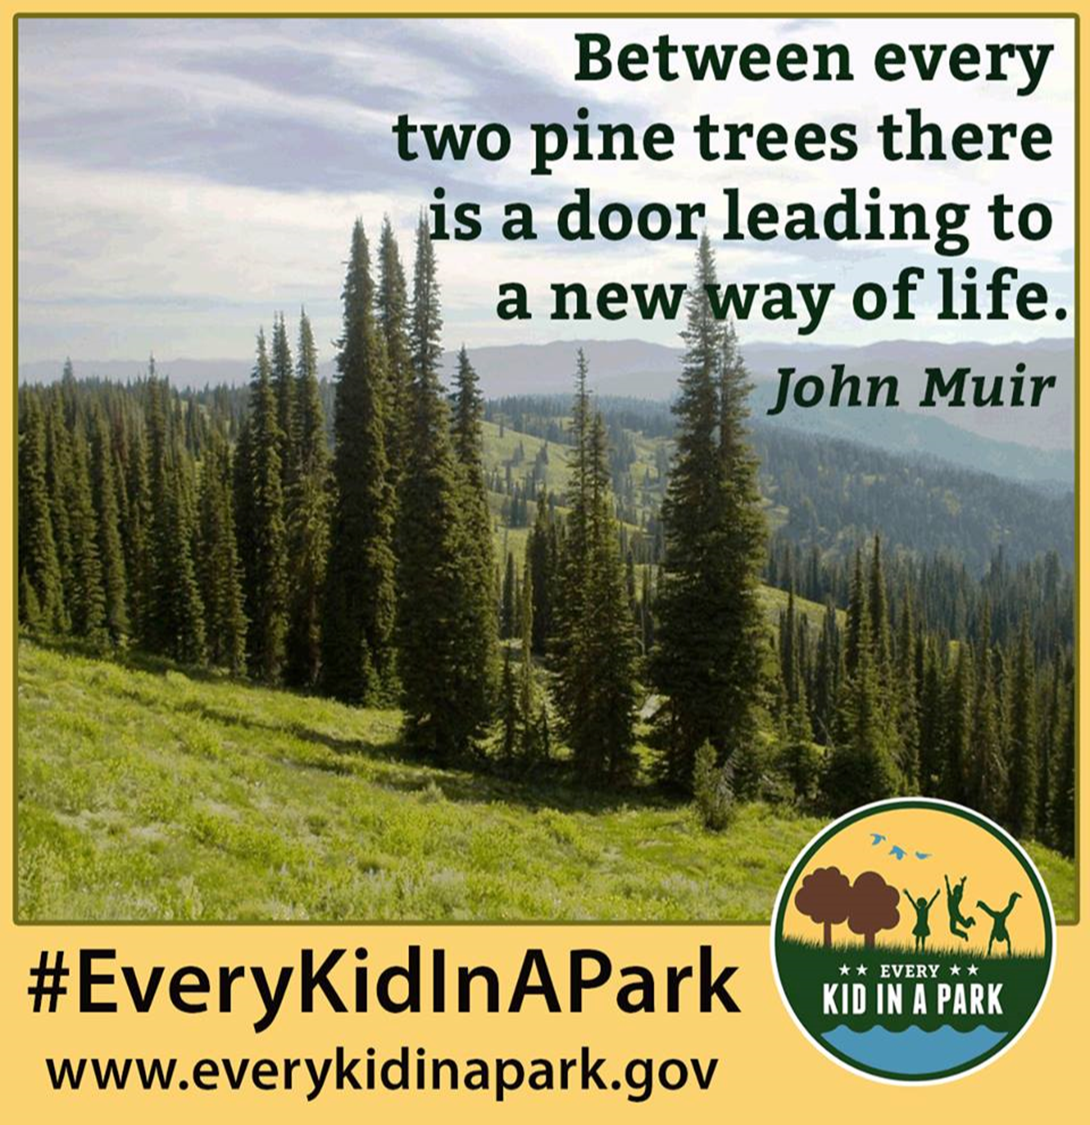 Between every two pine trees there is a door leading to a new way of life. John Muir